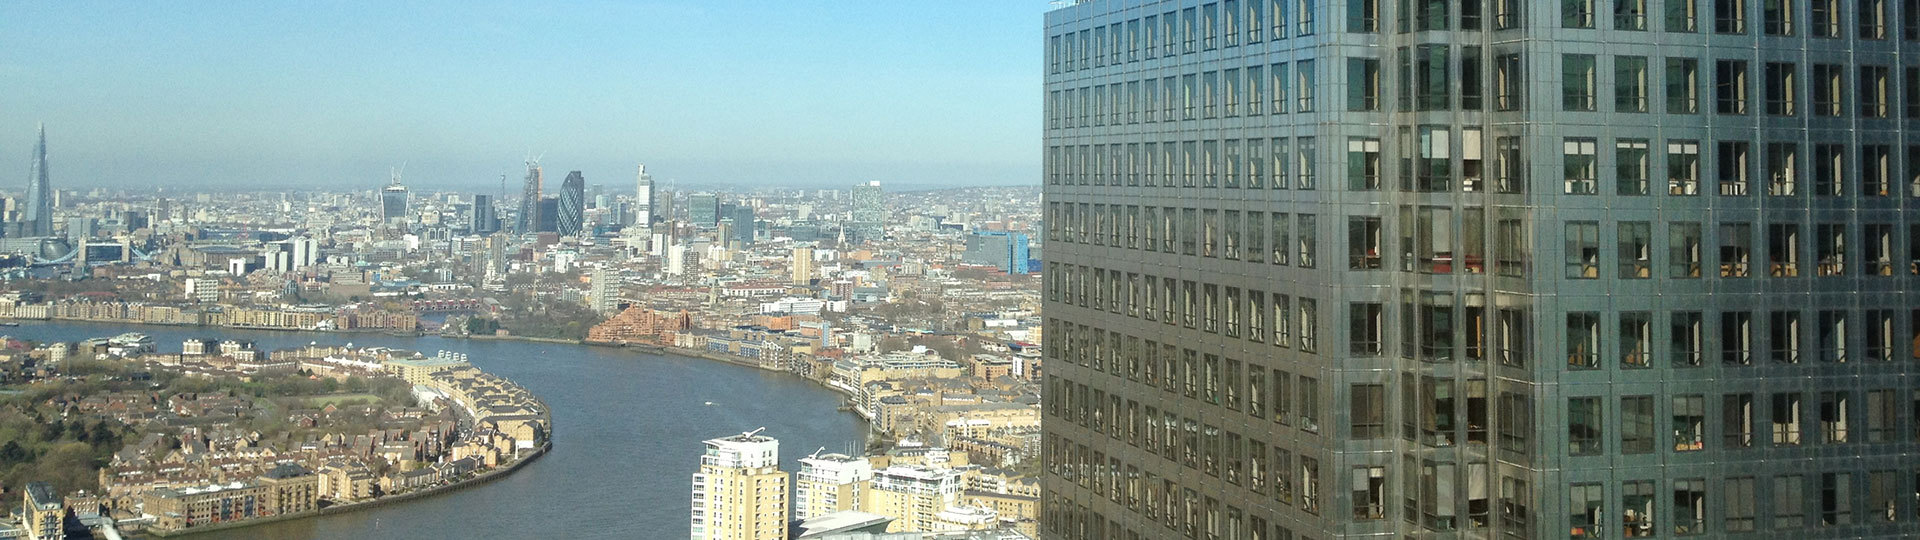 A view over London